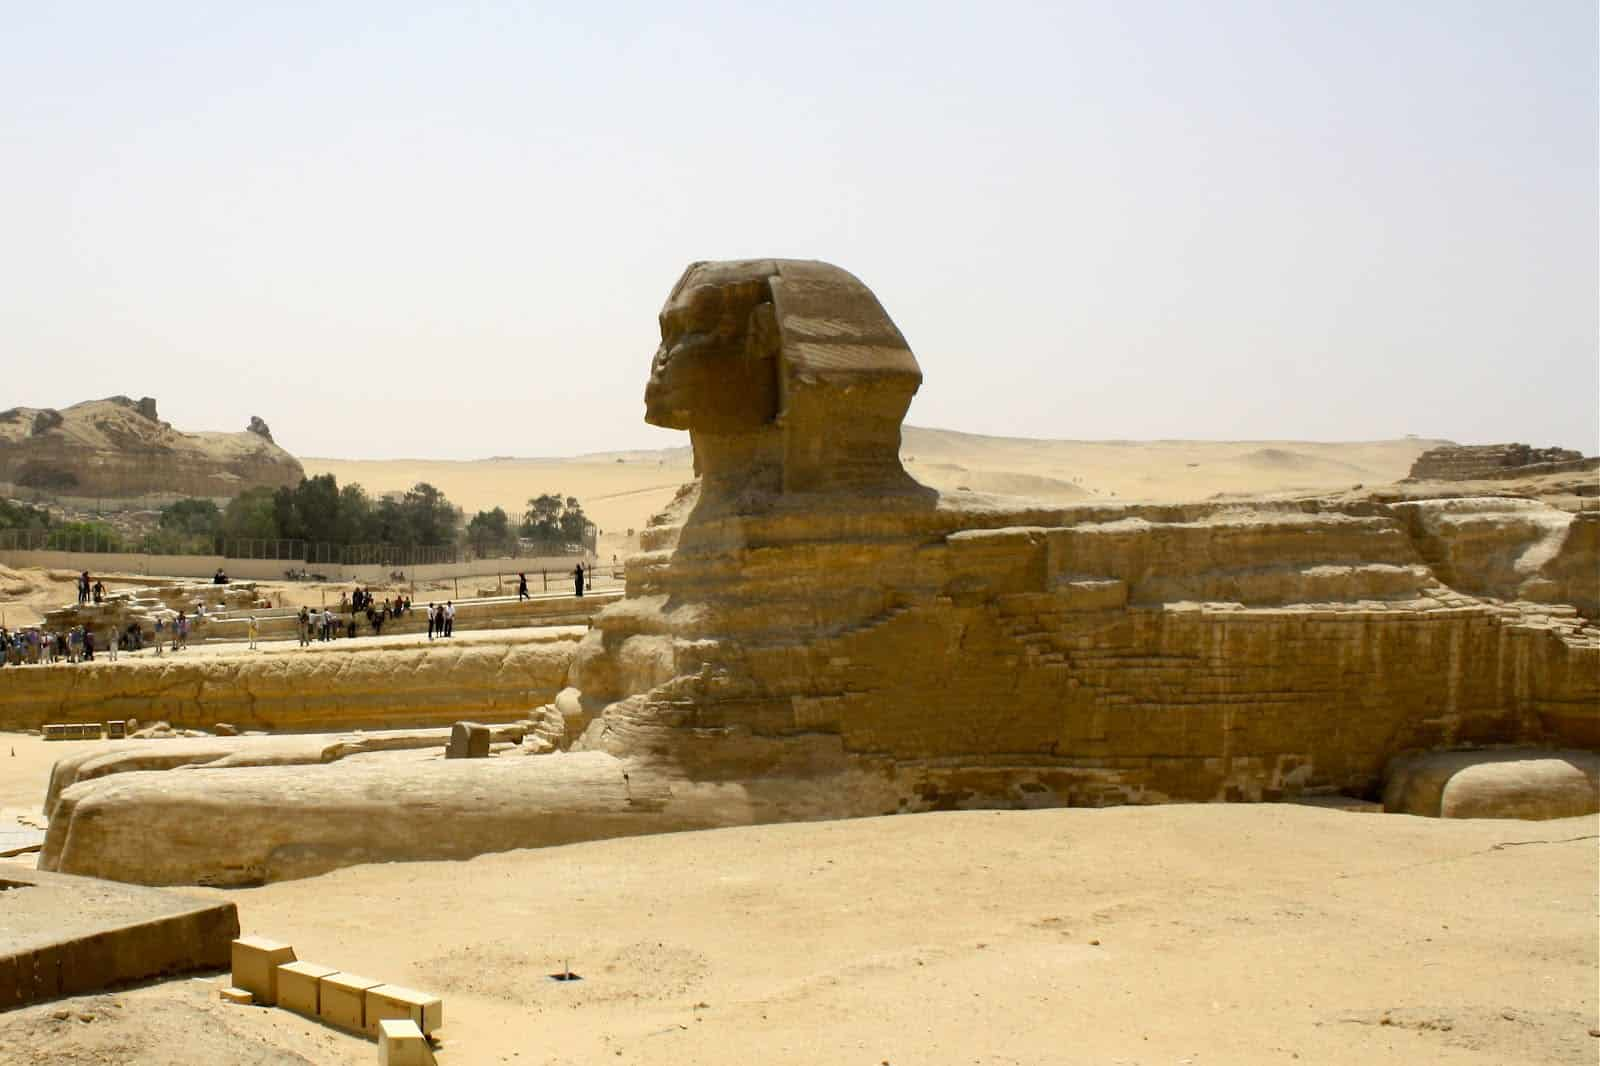 What to feed the sphinx